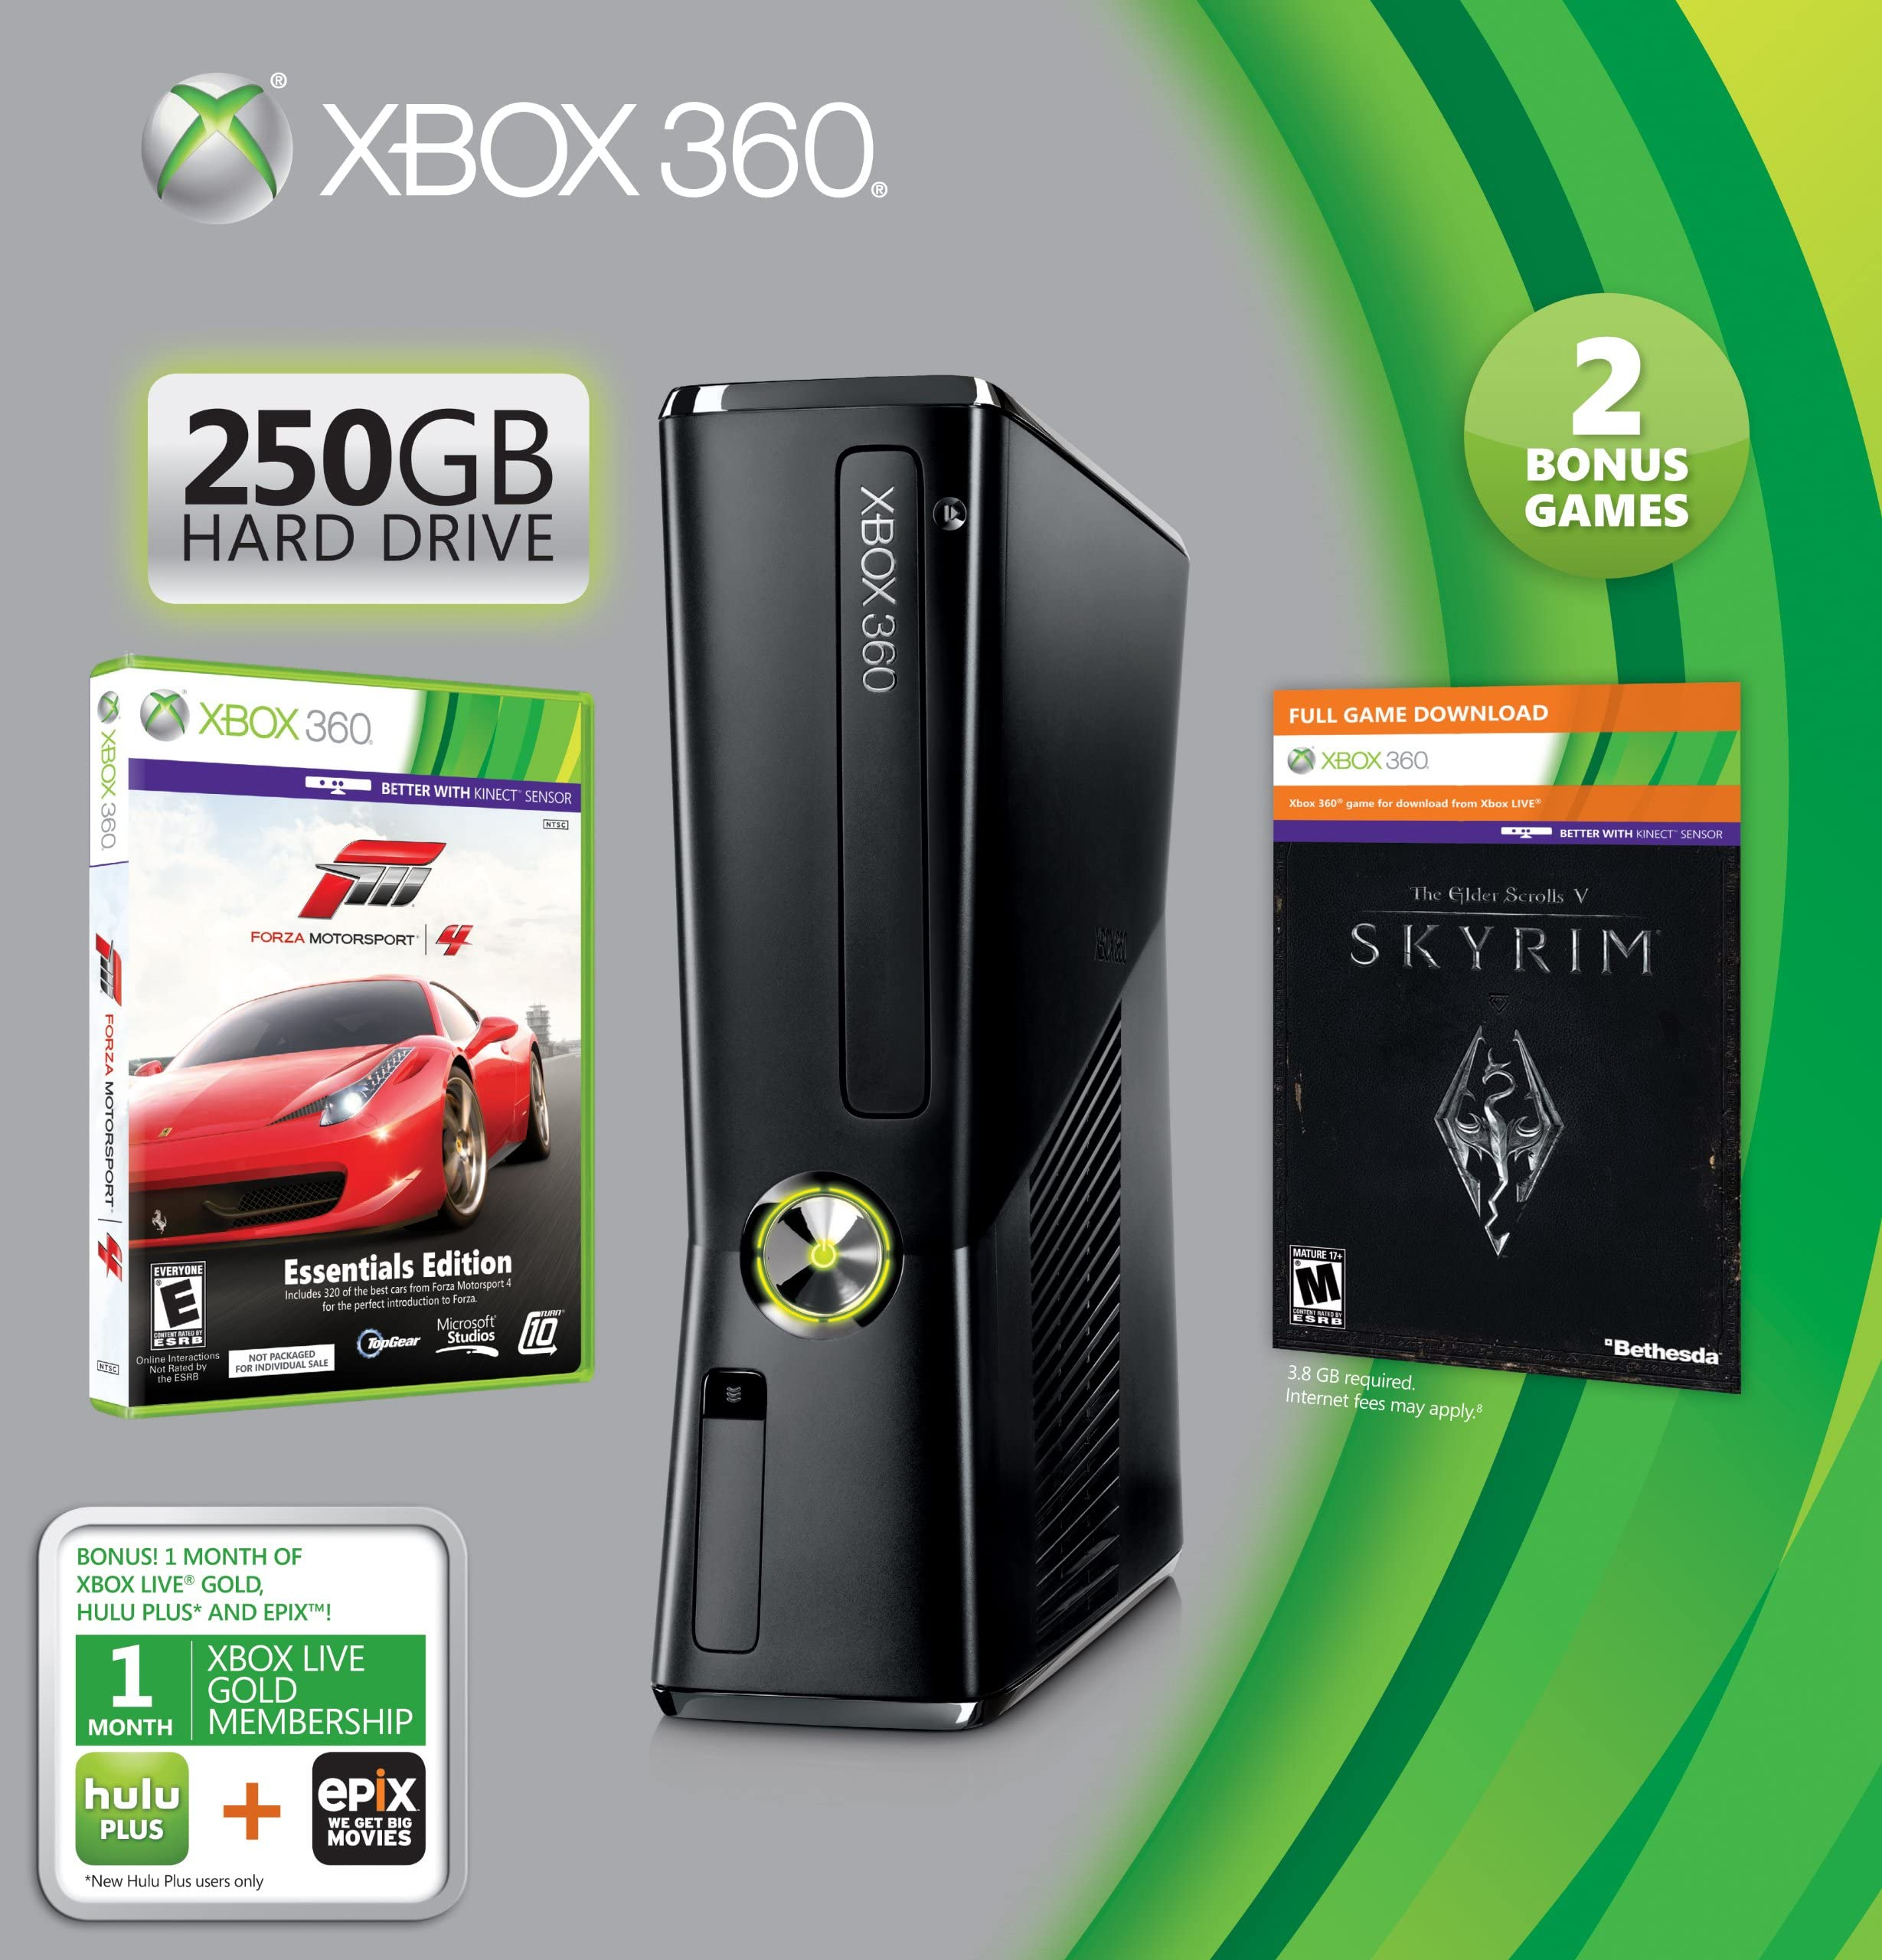 Amazon.com: Xbox 360 250GB Holiday Value Bundle: microsoft xbox 360 ...